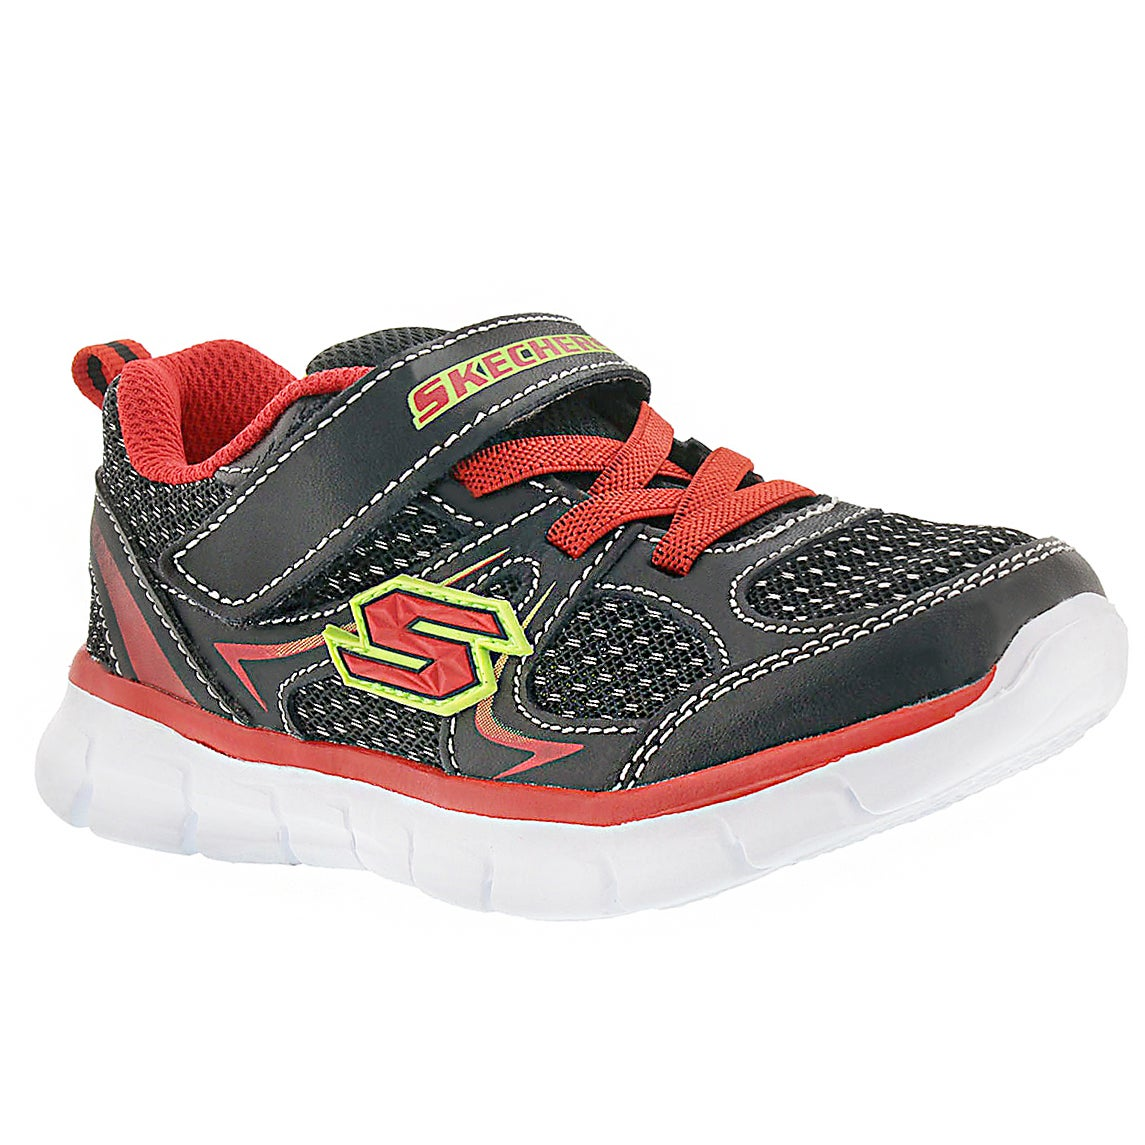 Infants' MINI DASH black/red sneakers